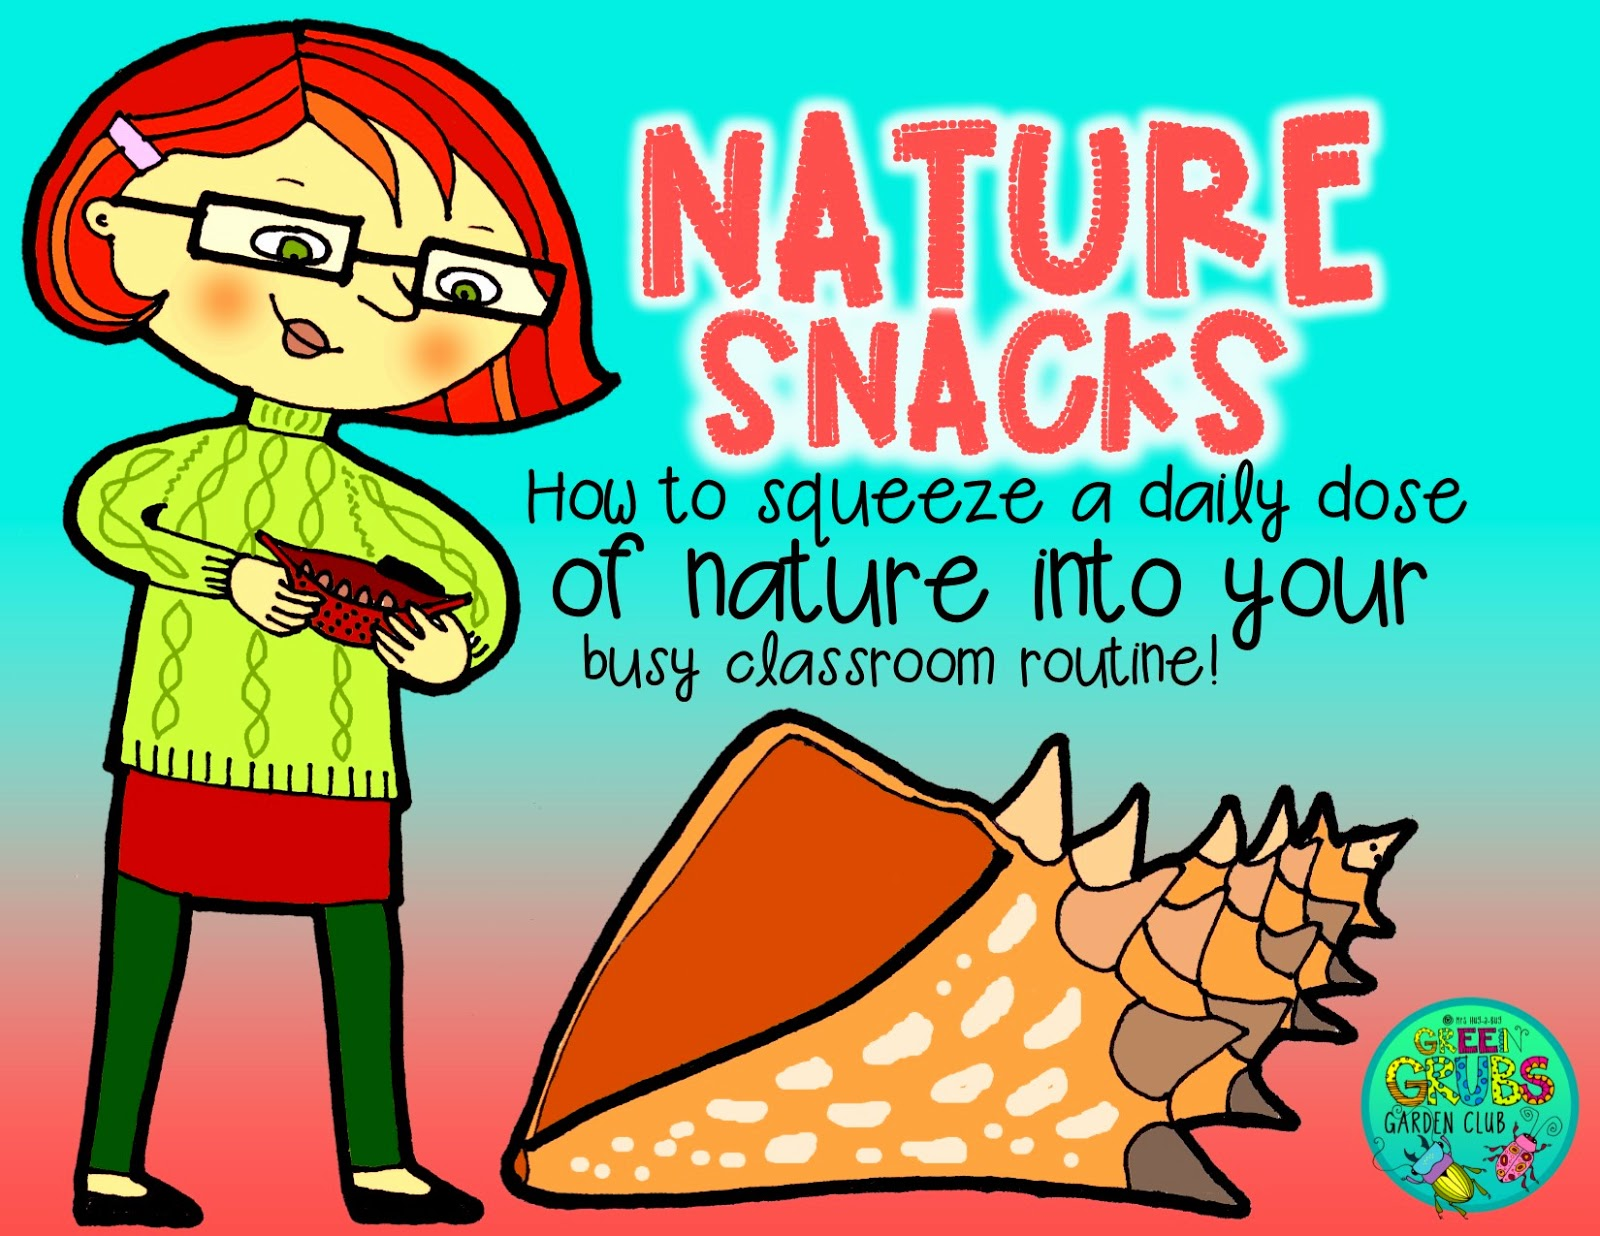 How to squeeze a daily dose of nature into your busy classroom routine {+36 free 'Nature Snack' prompt cards!}